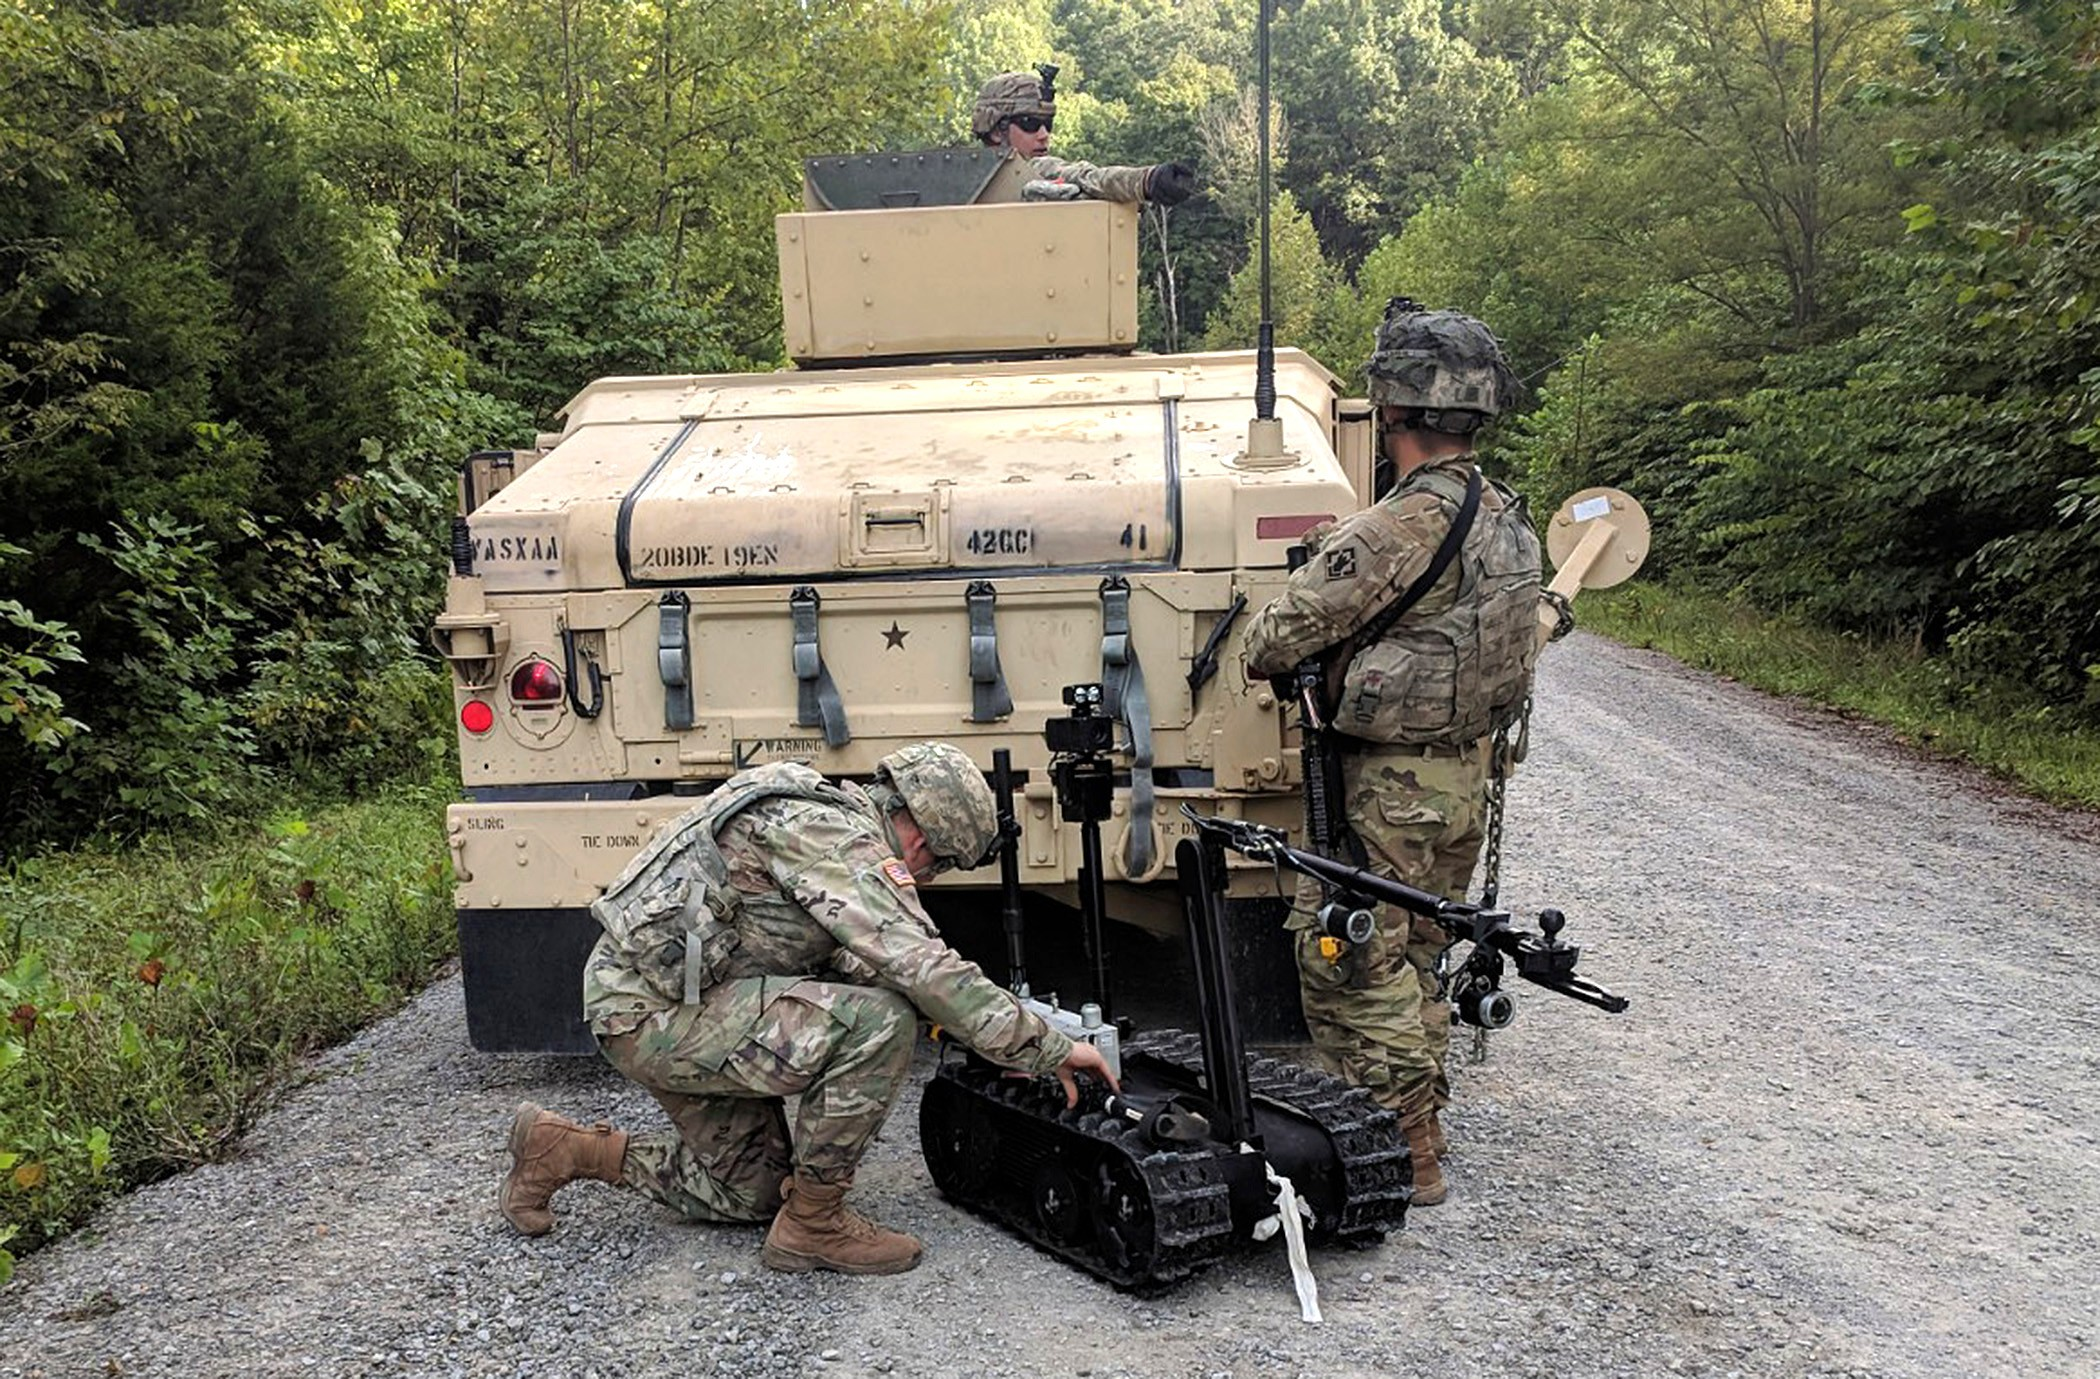 19th Engineers' 42nd Clearance Company deploys to clear the